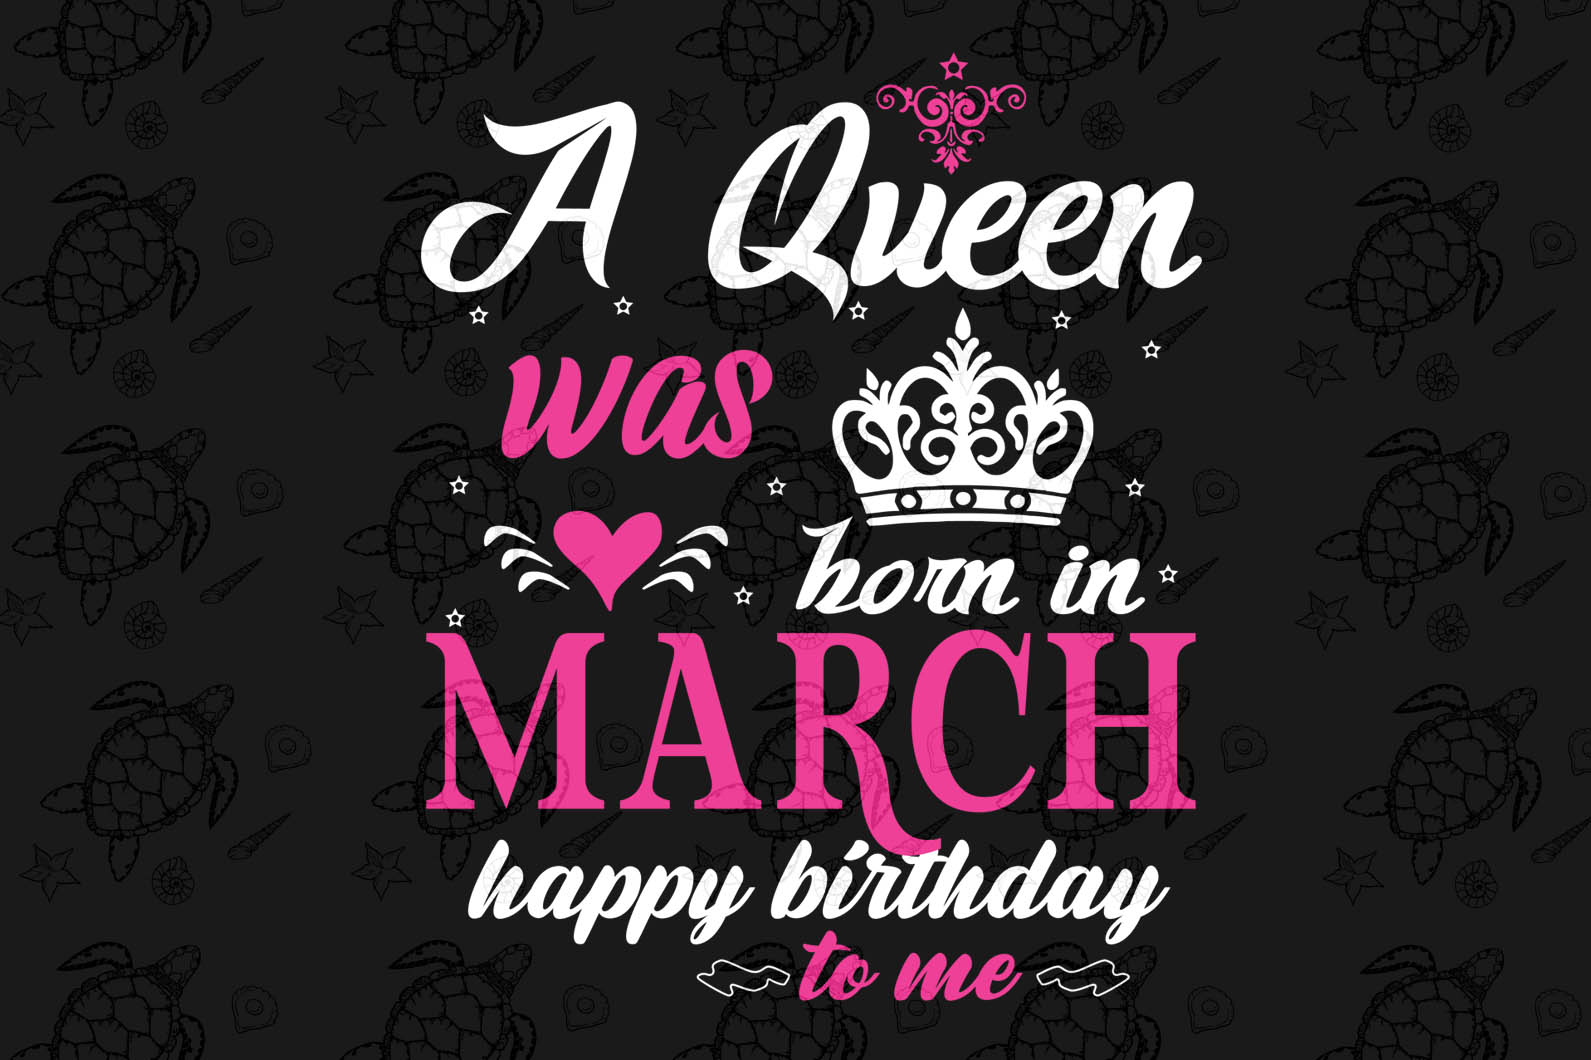 A queen was born in March, retro vintage shirt, born in March, March svg, March birthday, March birthday gift, birthday shirt, queen svg, girl gift, girl shirt, svg cut files, svg clipart, silhouette svg, cricut svg files, decal and vinyl,